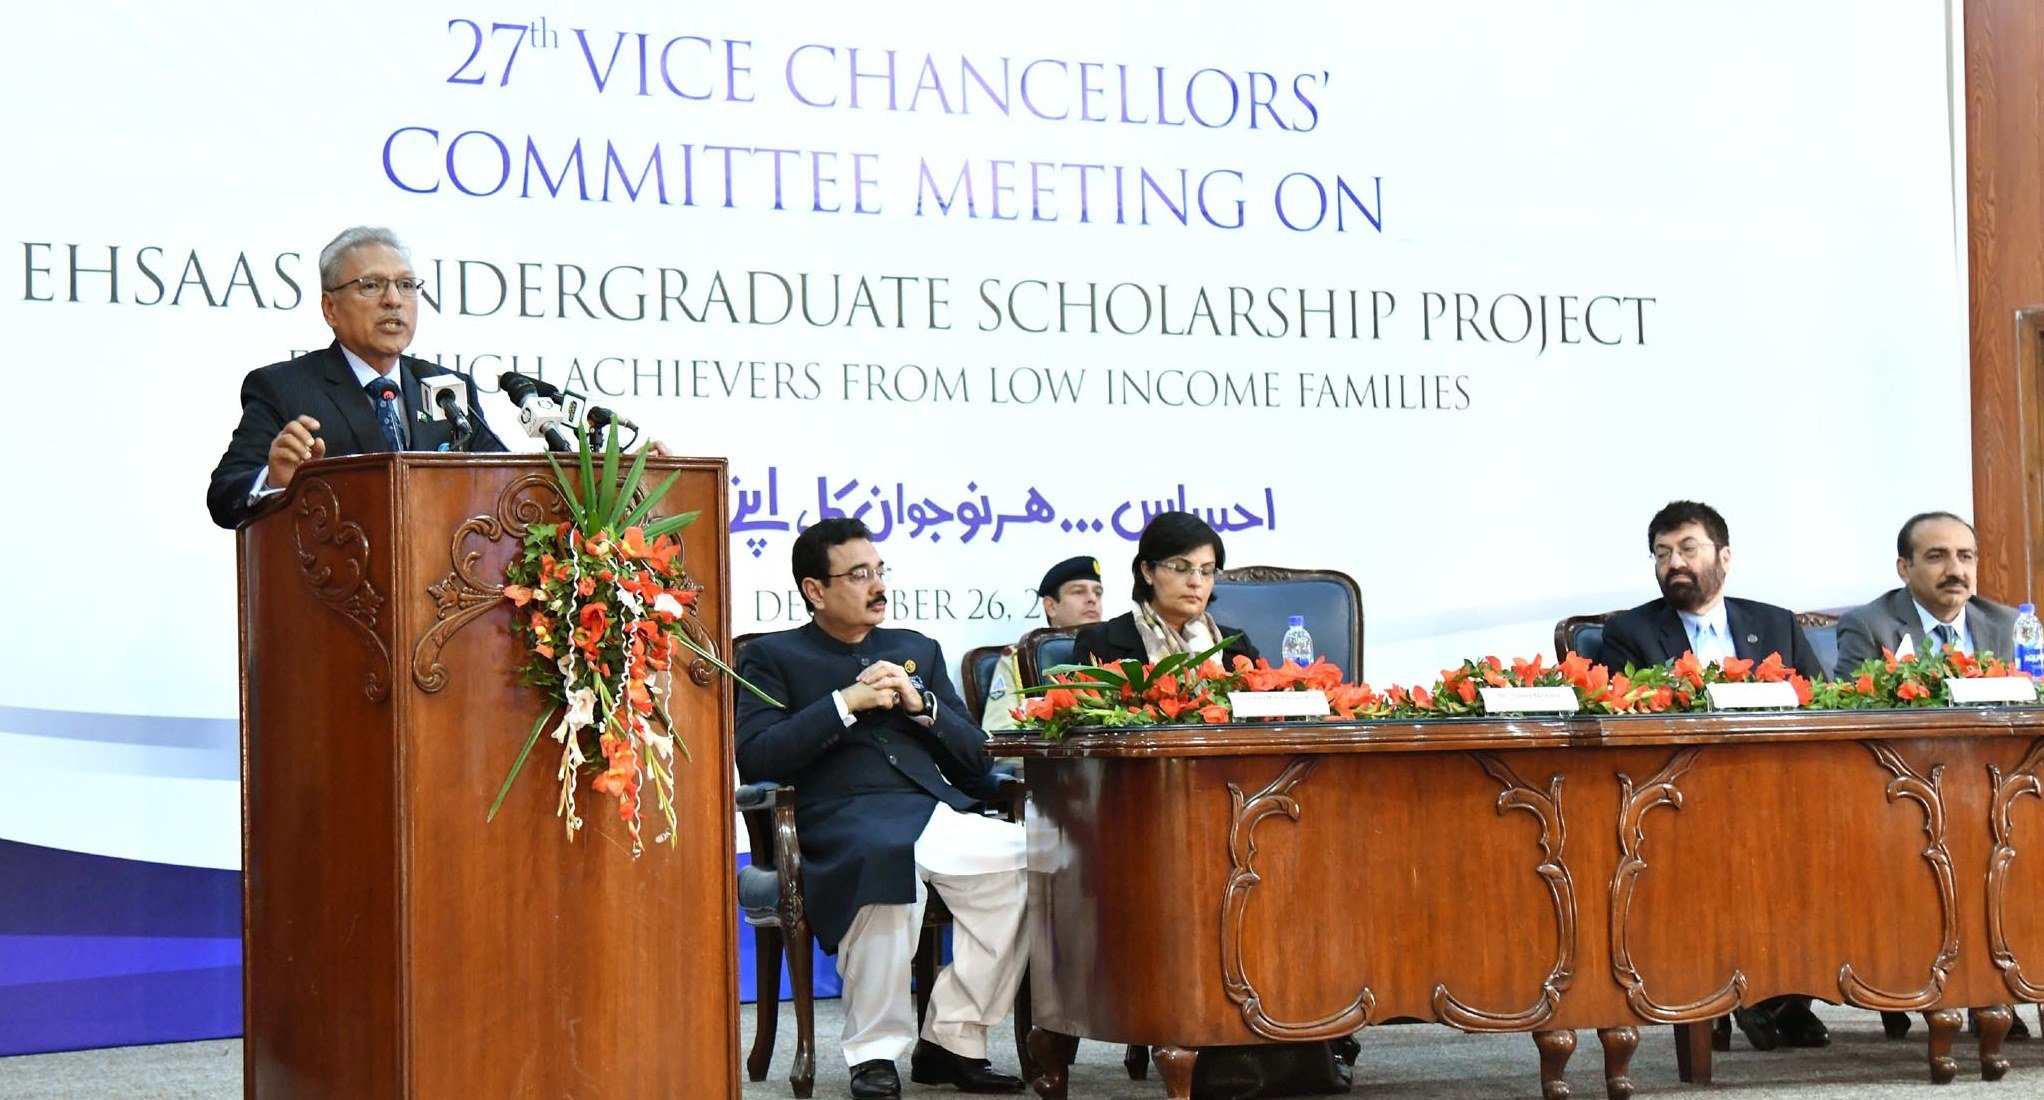 President Dr Arif Alvi addressing Vice Chancellors Committee on Ehsaas Undergraduate Programme at Higher Education Commission in Islamabad